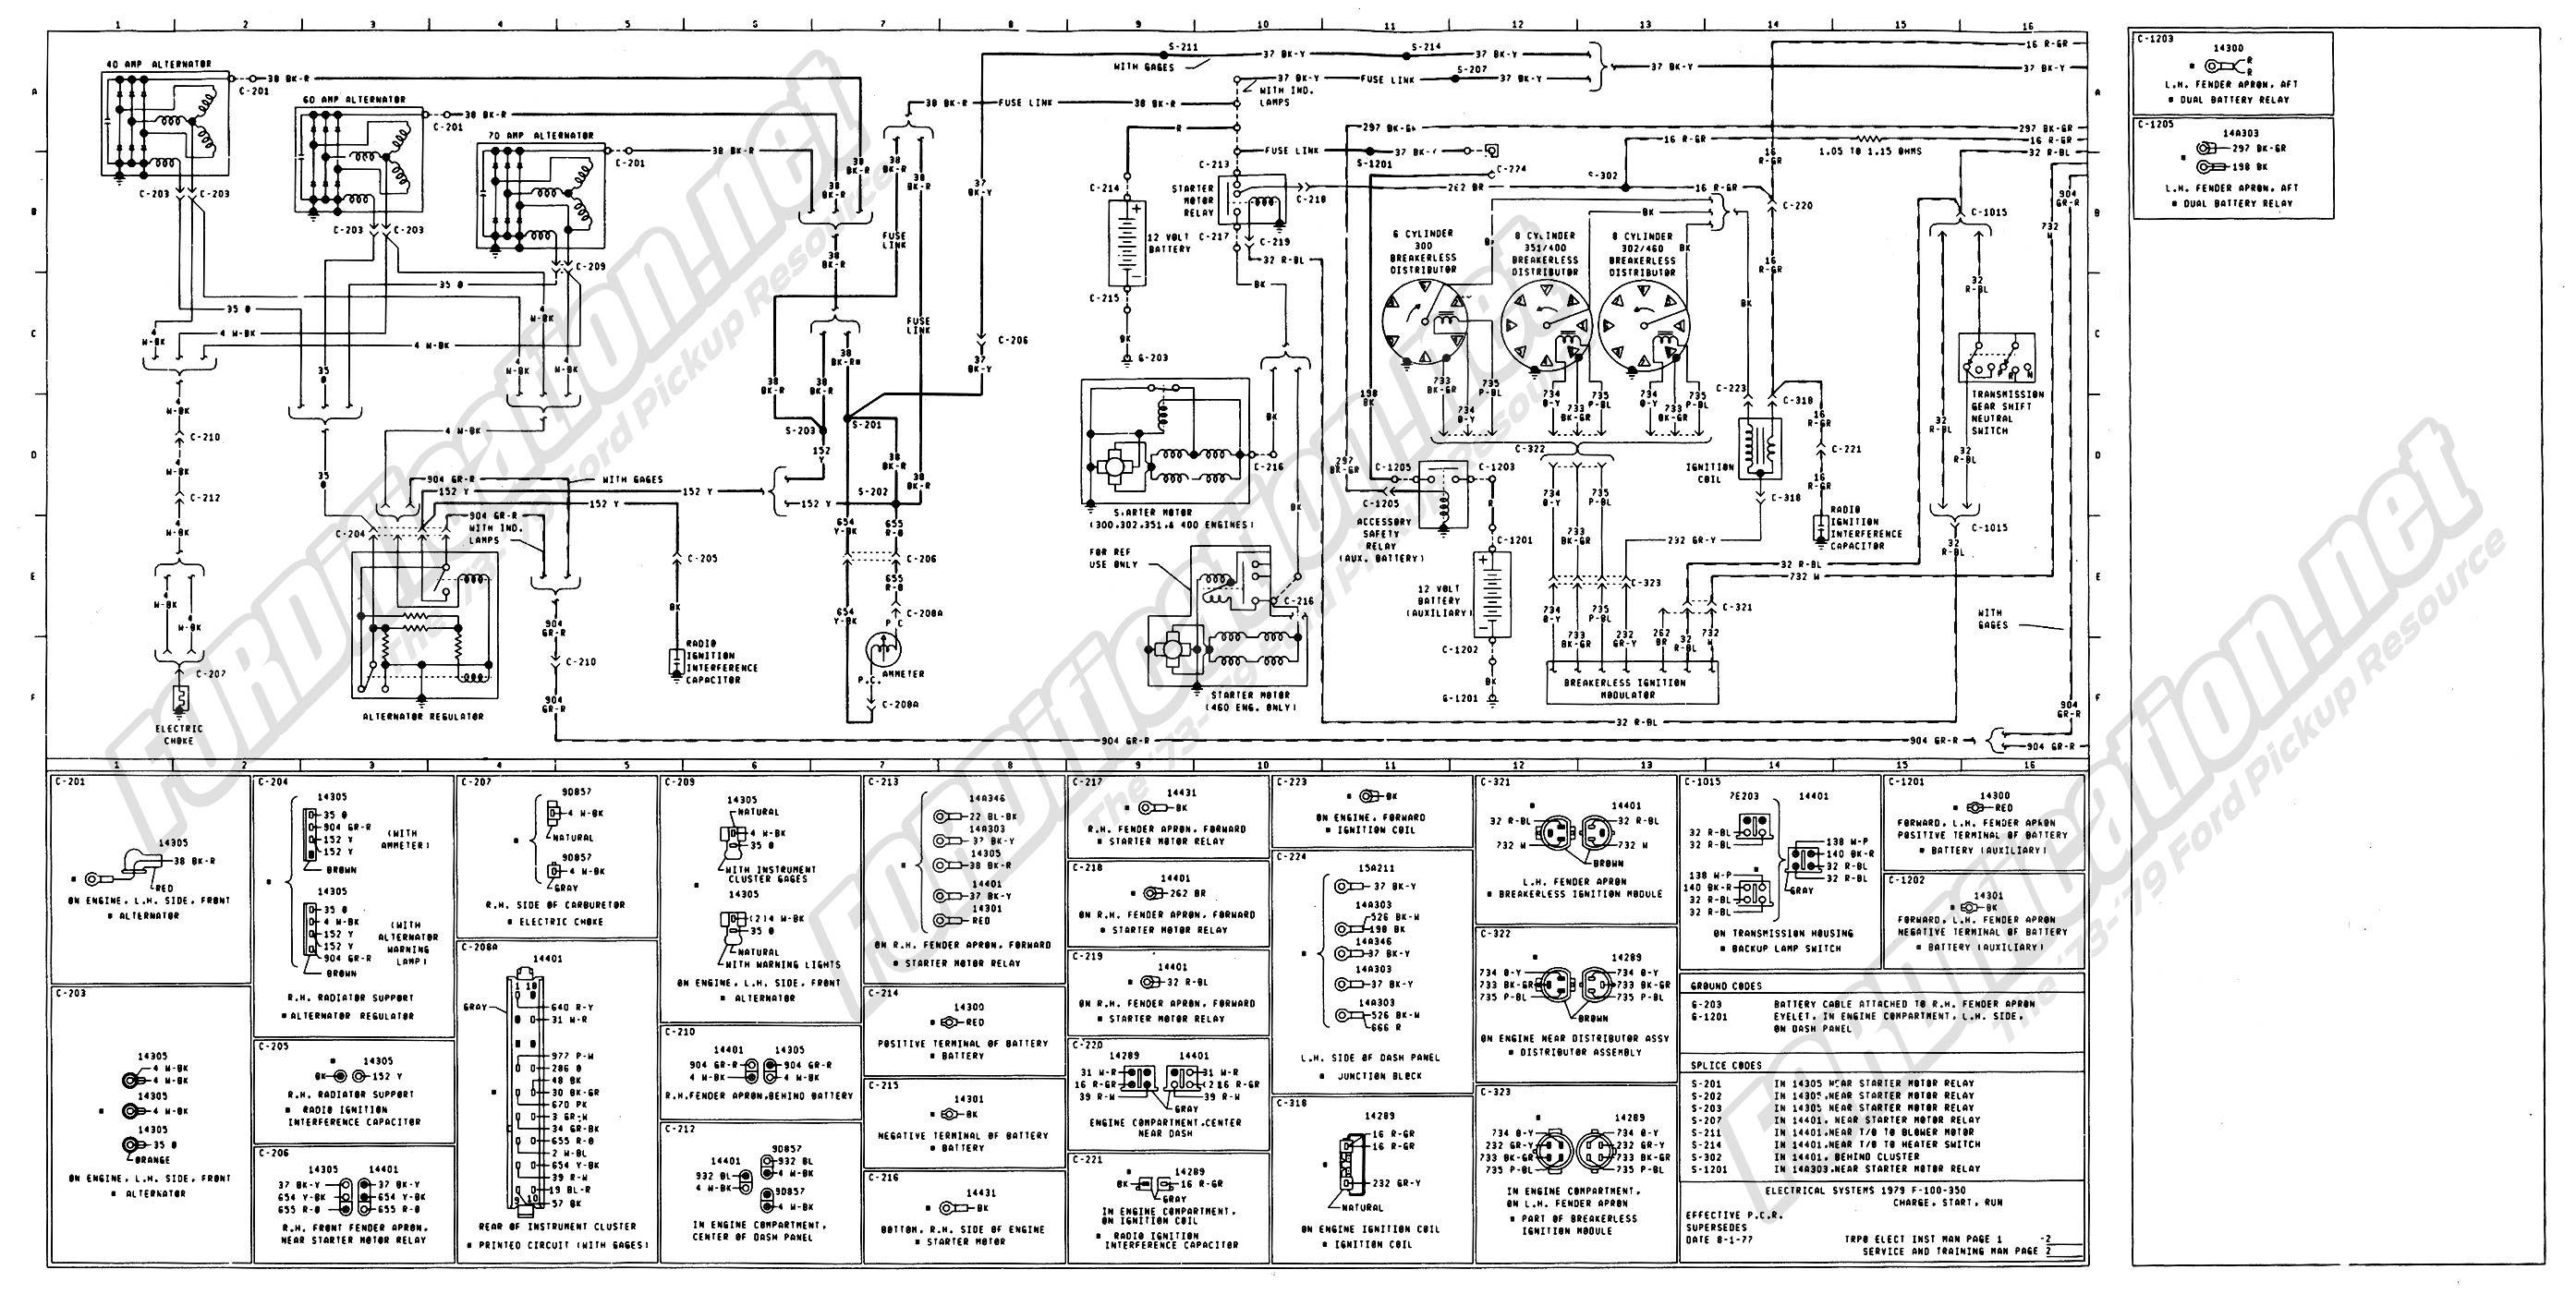 1973 1979 Ford Truck Wiring Diagrams & Schematics Fordification Net Ford  F100 Wiring Diagrams Taco Wiring Diagrams F100 V8